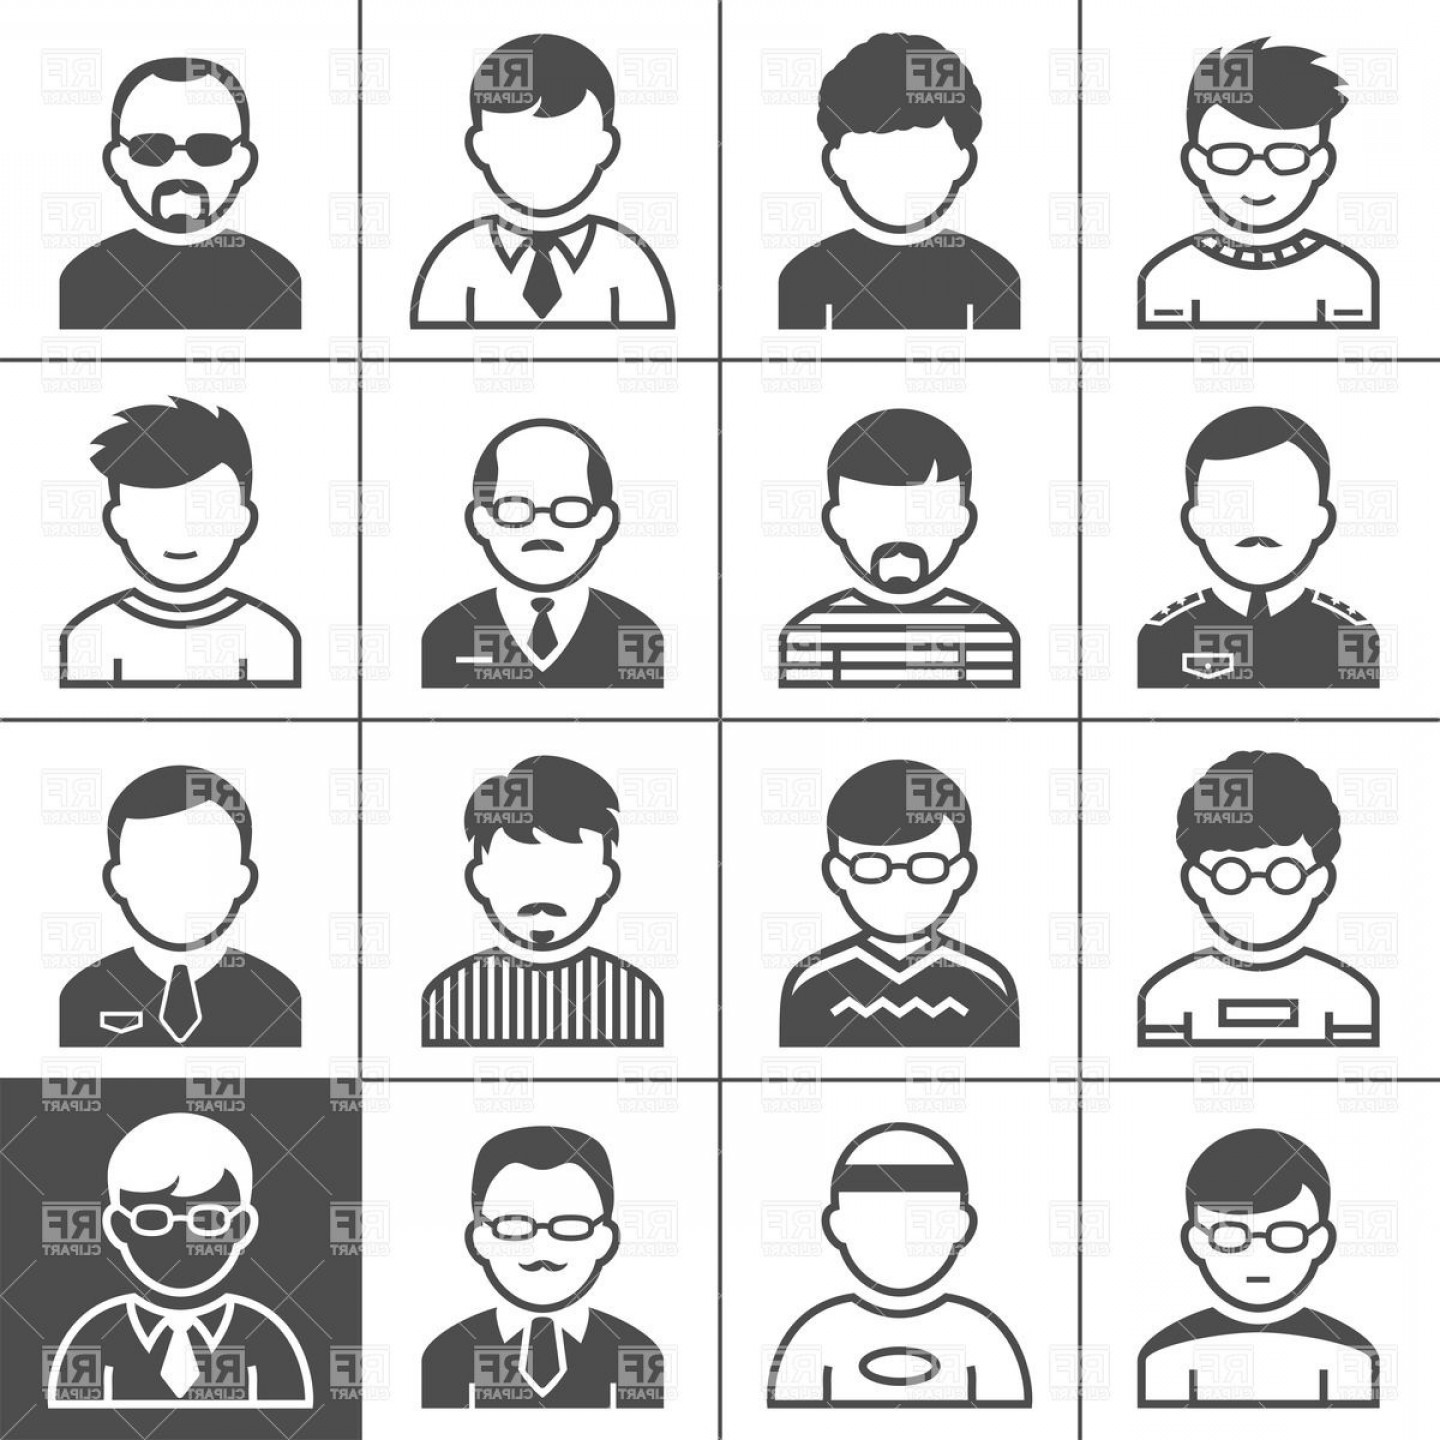 User Icon Vector Free: Men Avatars And User Icons Occupations Of People Vector Clipart